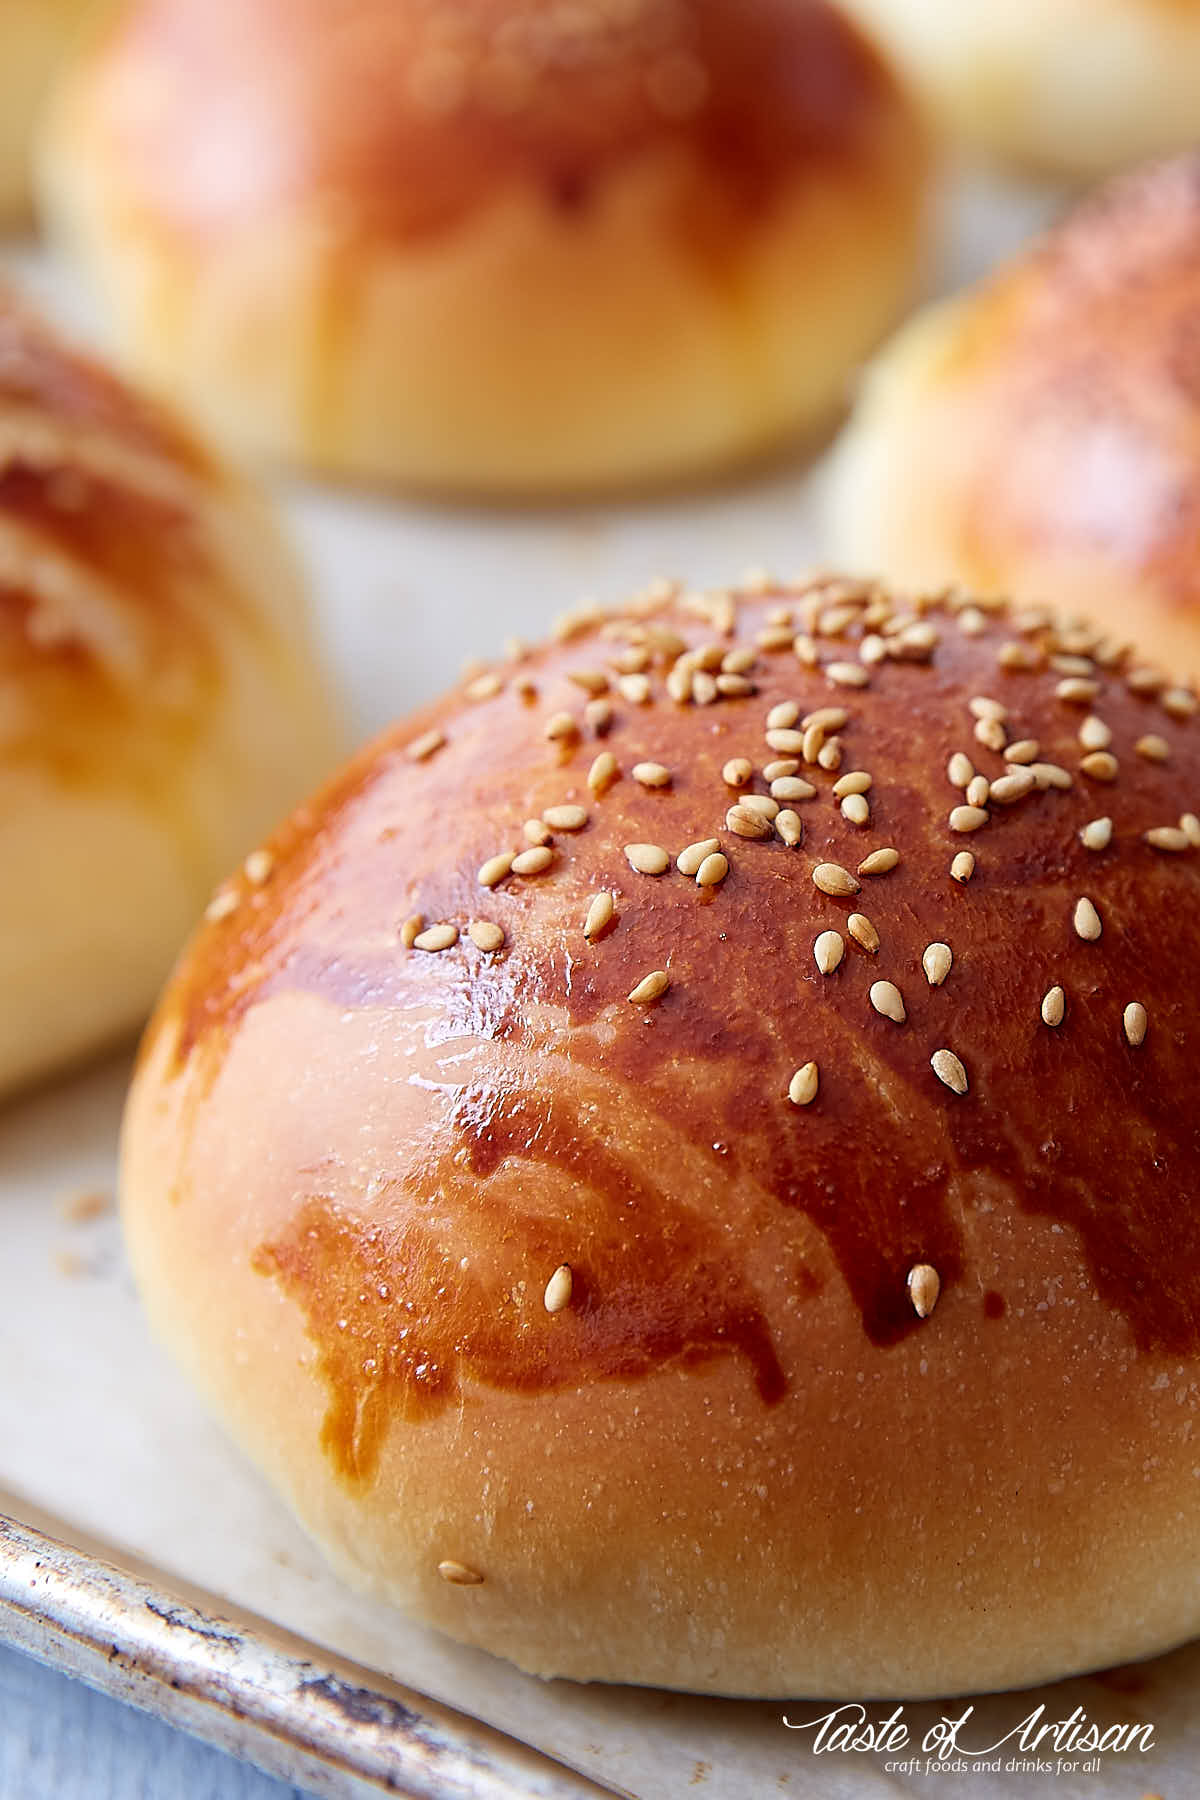 A close up of golden brown brioche bun with sesame seeds on top.